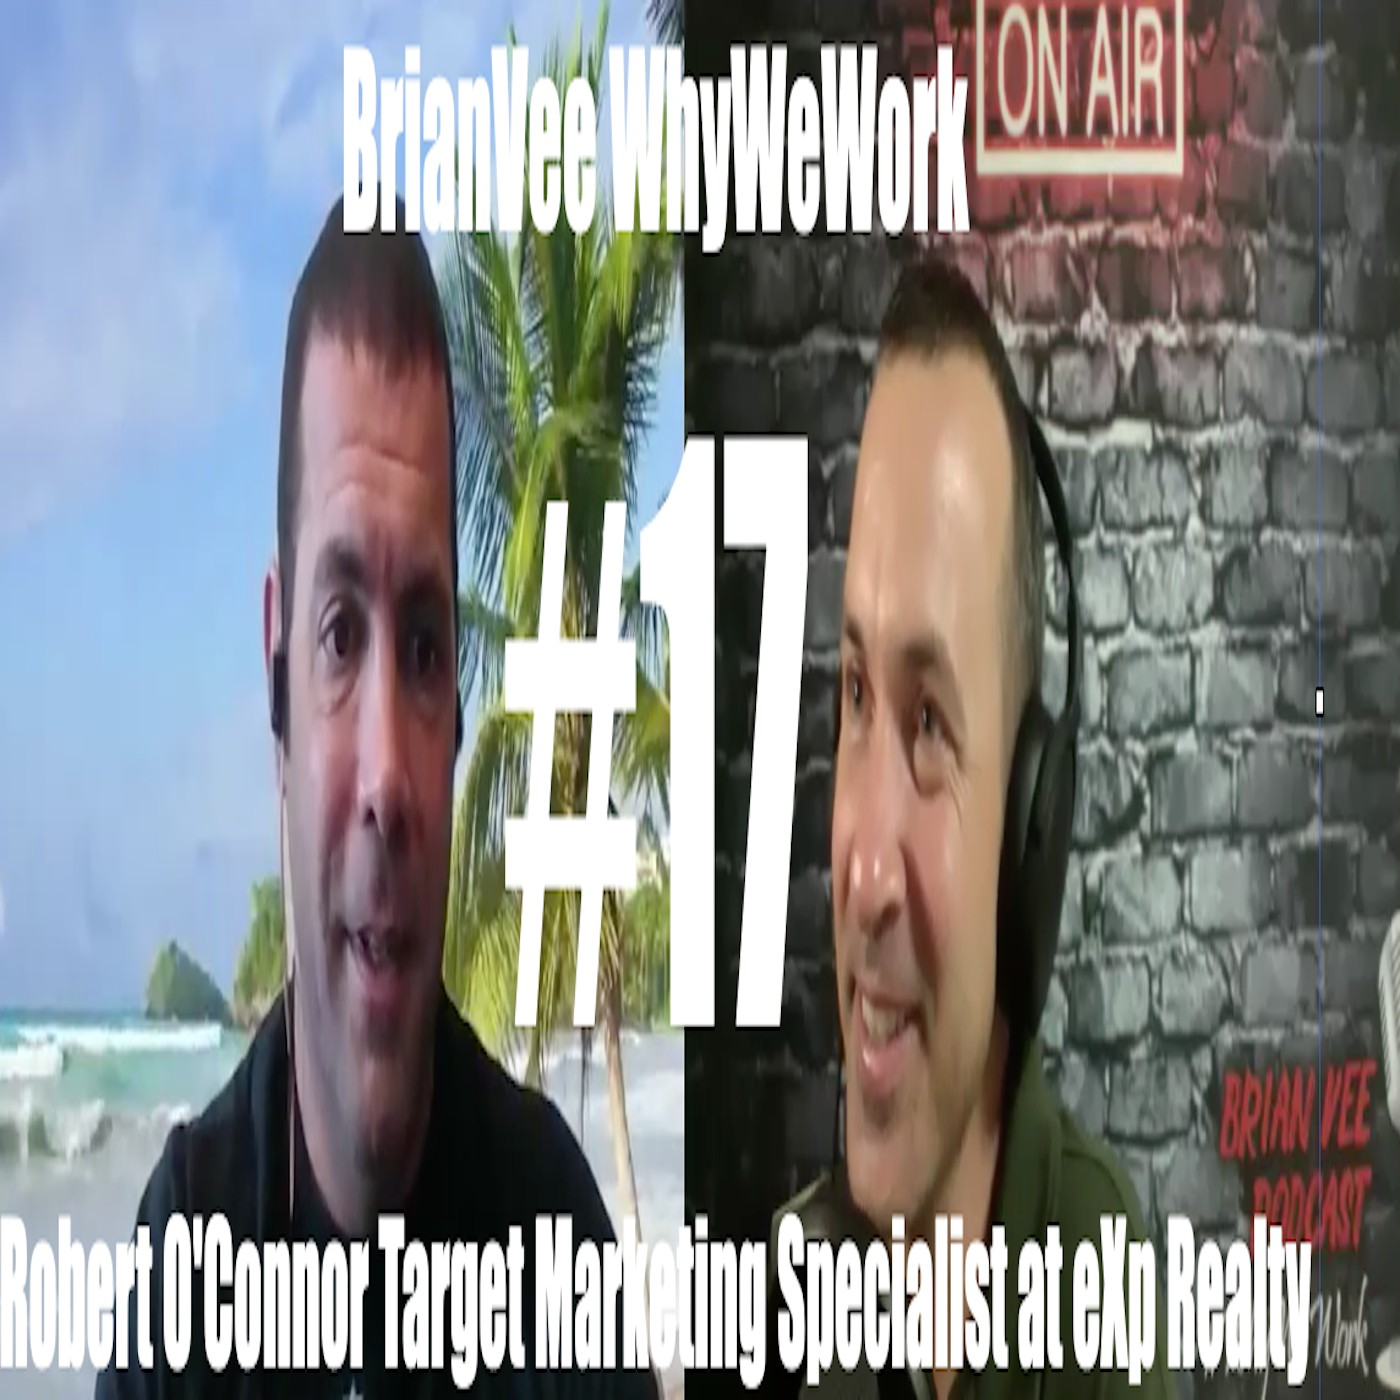 #17 Robert O'Connor Target Marketing Specialist at eXp Realty & Casino Professional